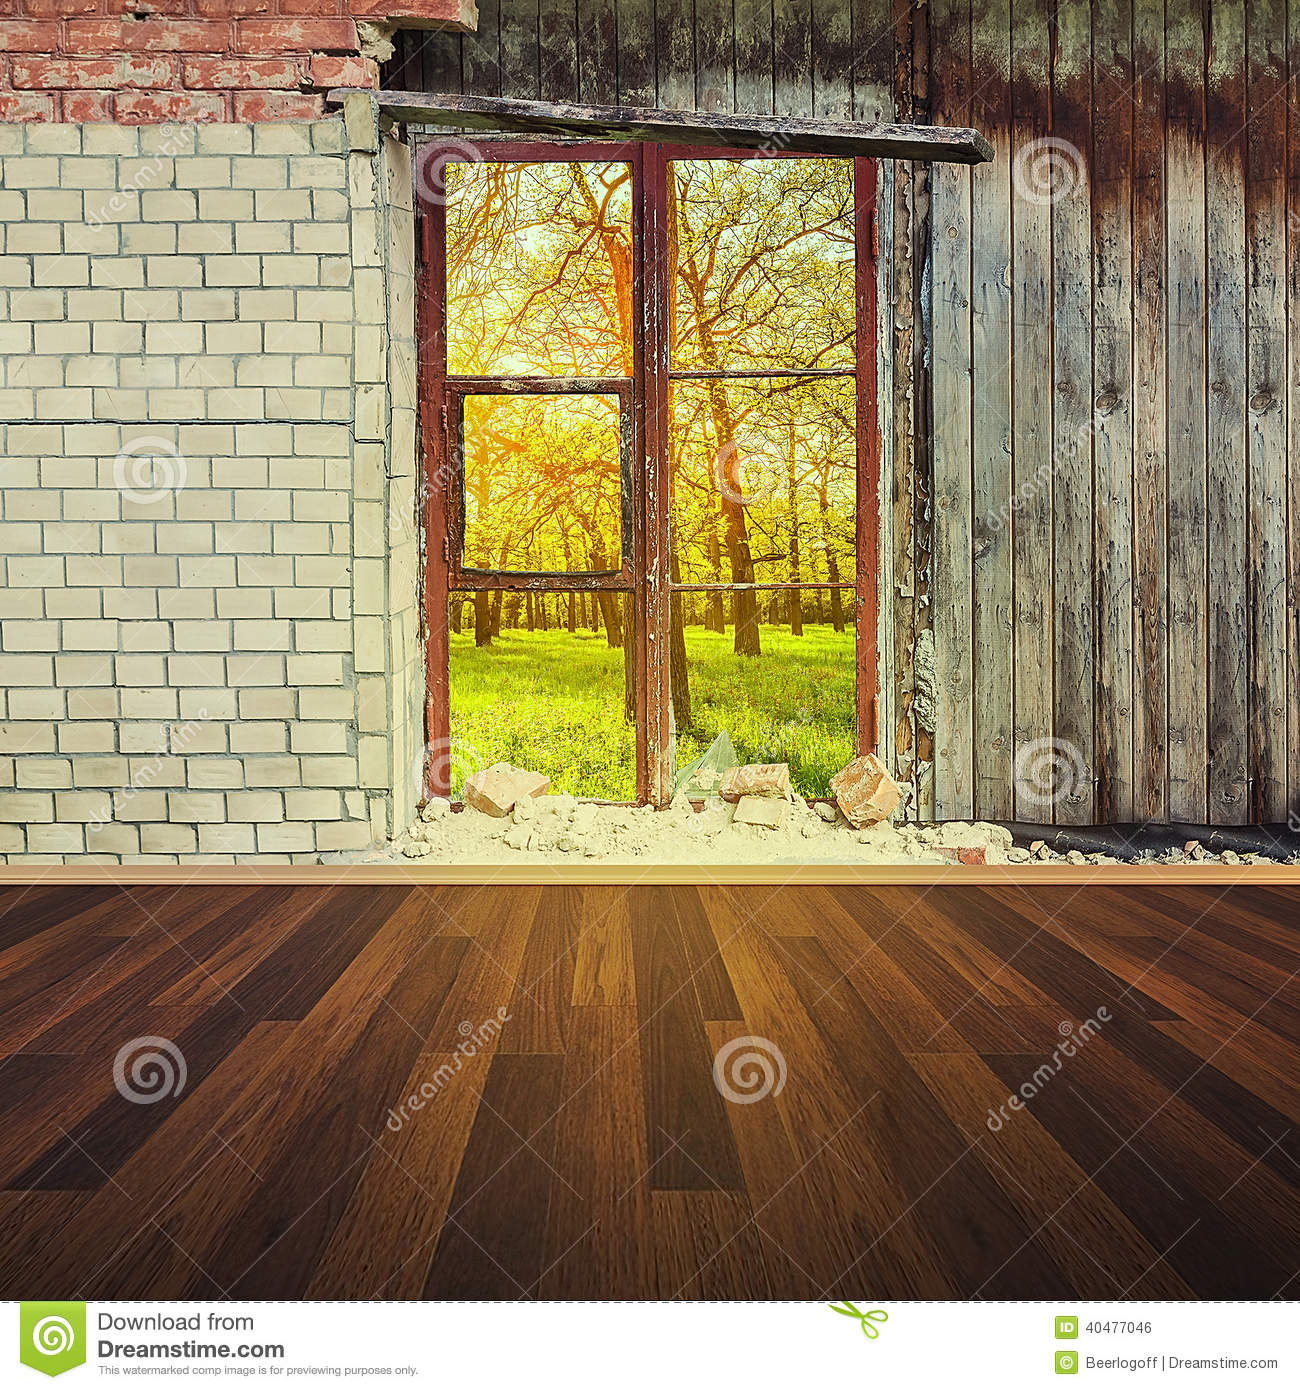 Old Interior Window Walls : Old interior with brick wall and window stock photo